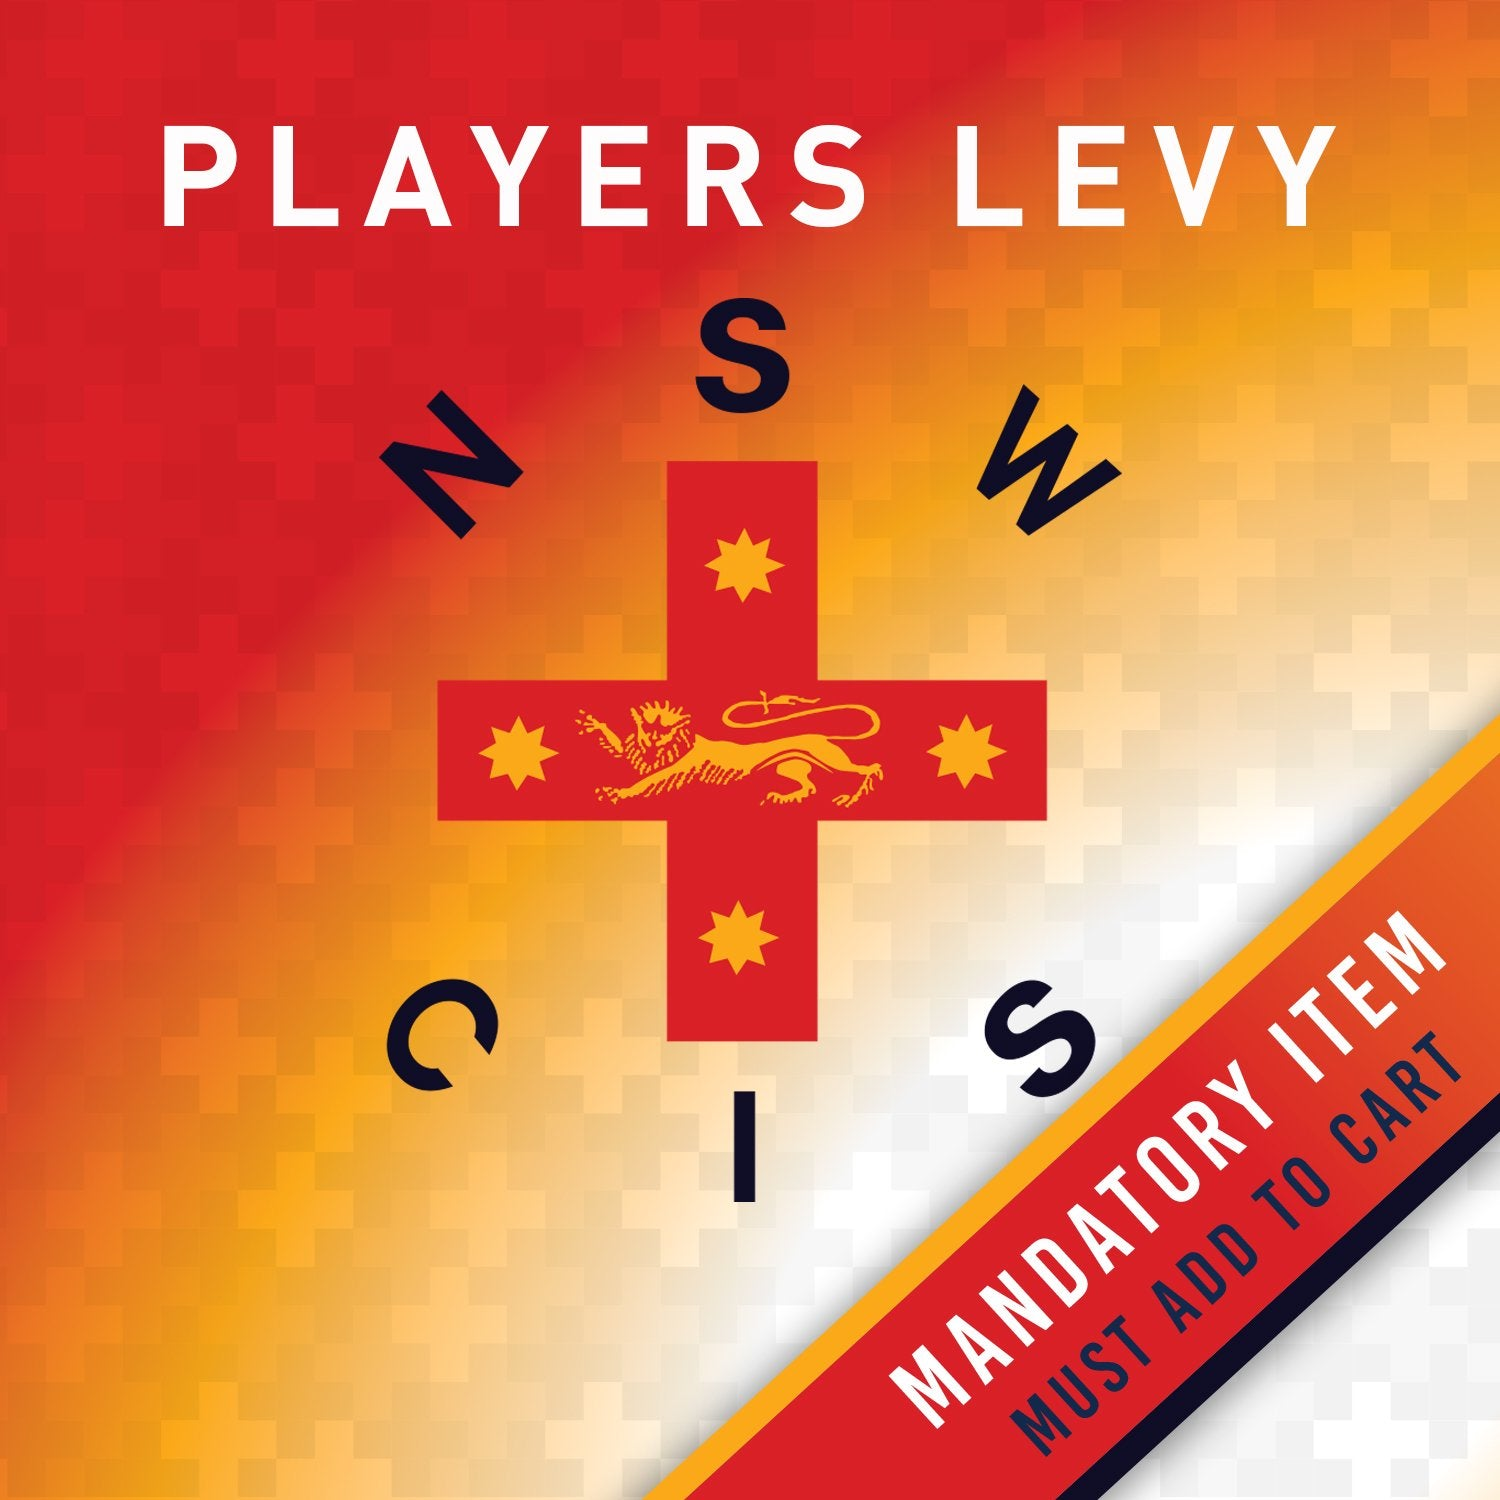 MANDATORY ITEM - PLAYERS LEVY - NSW CIS Secondary Tennis